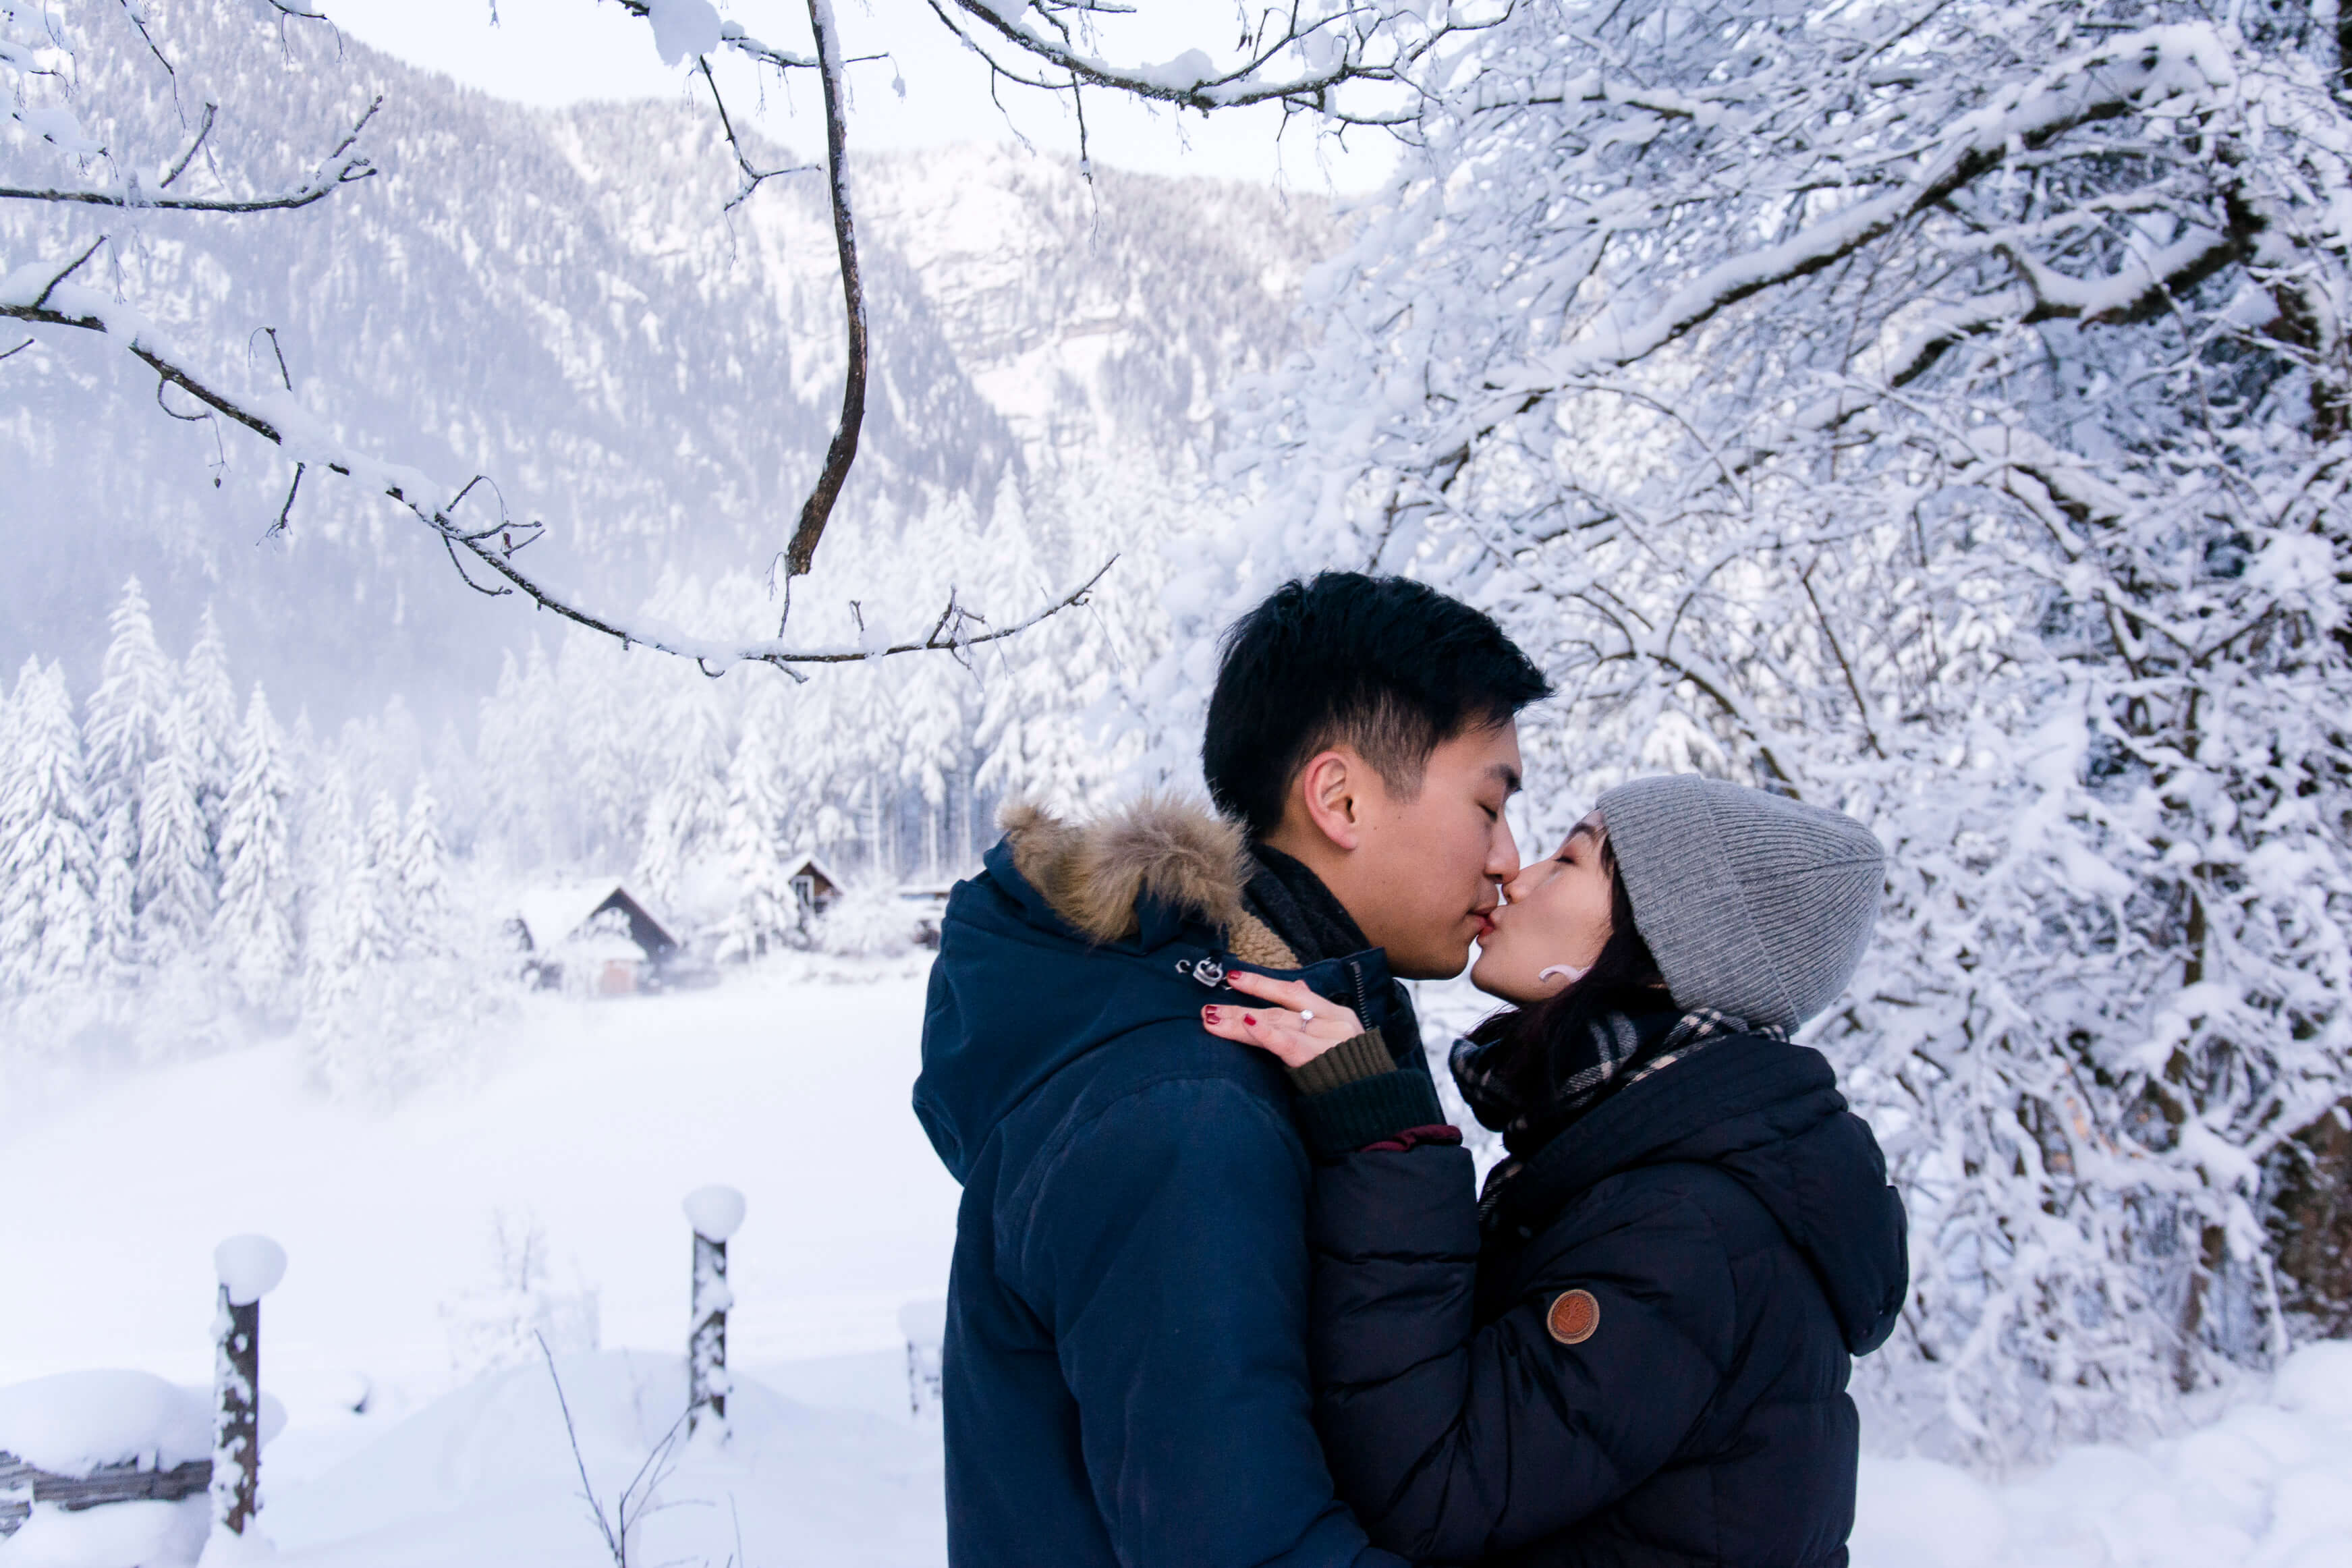 Engagement Pictures in the snow in Austria Hallstatt